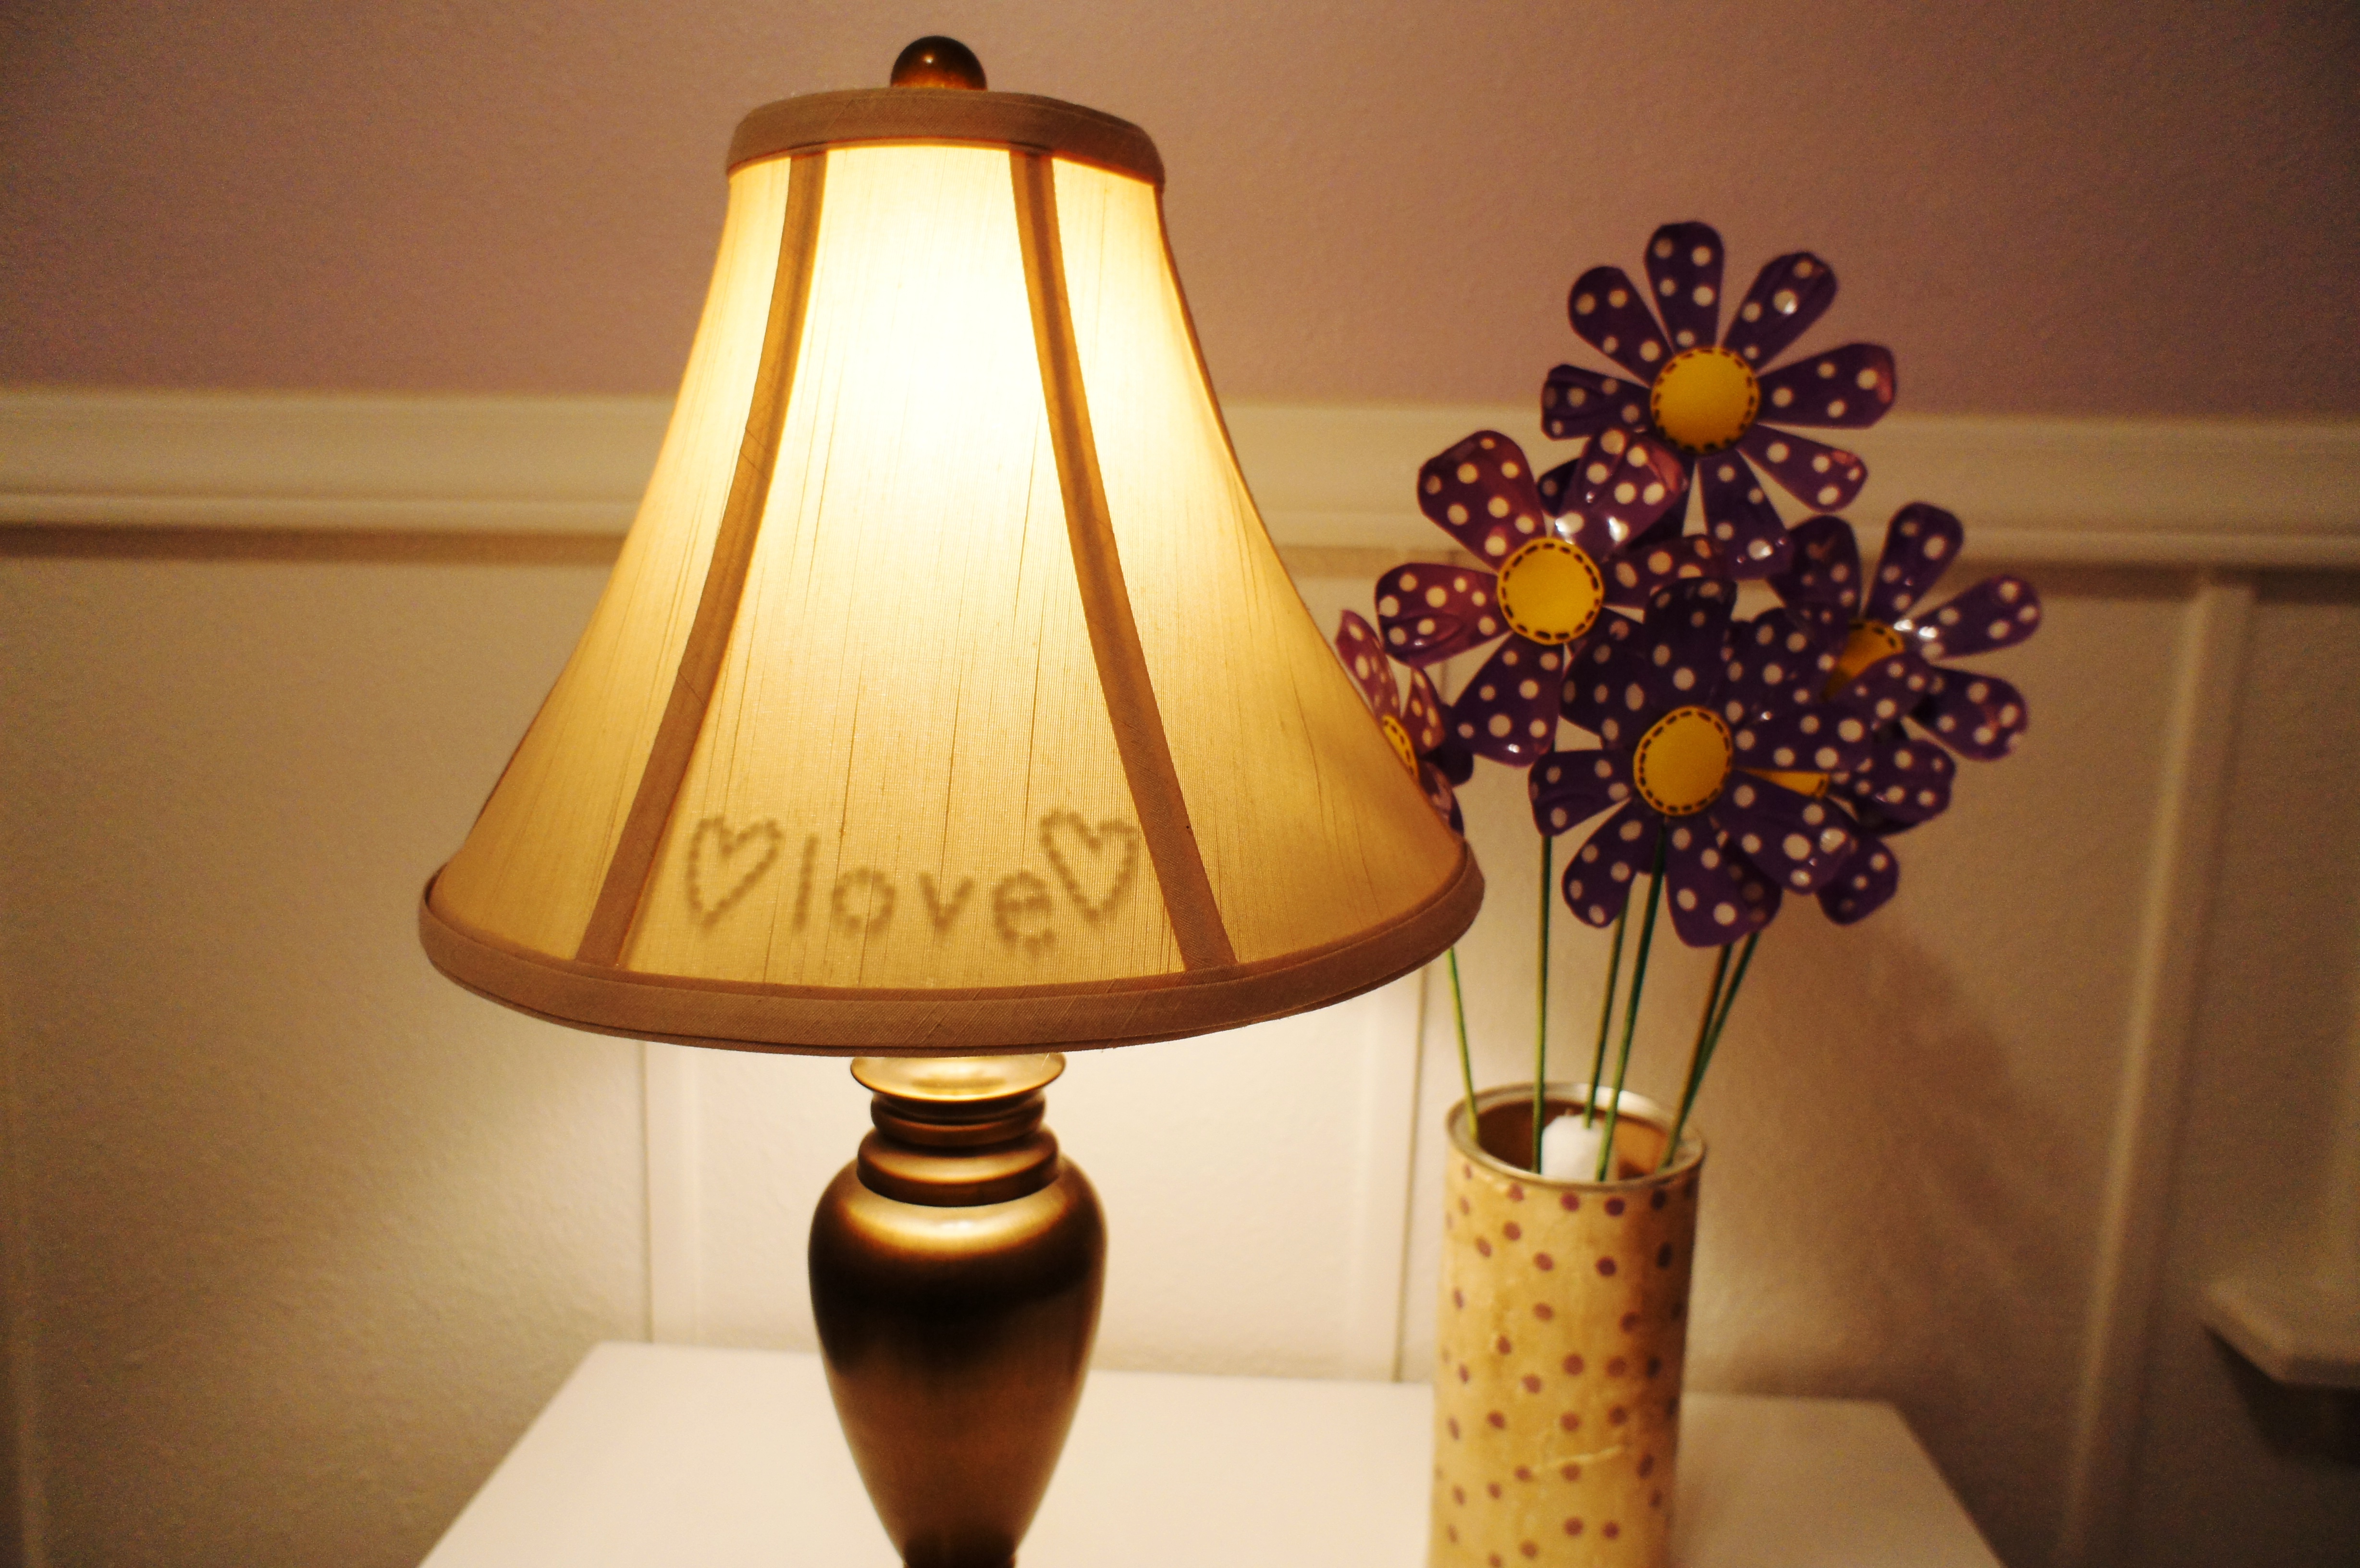 Hidden Message Lamp